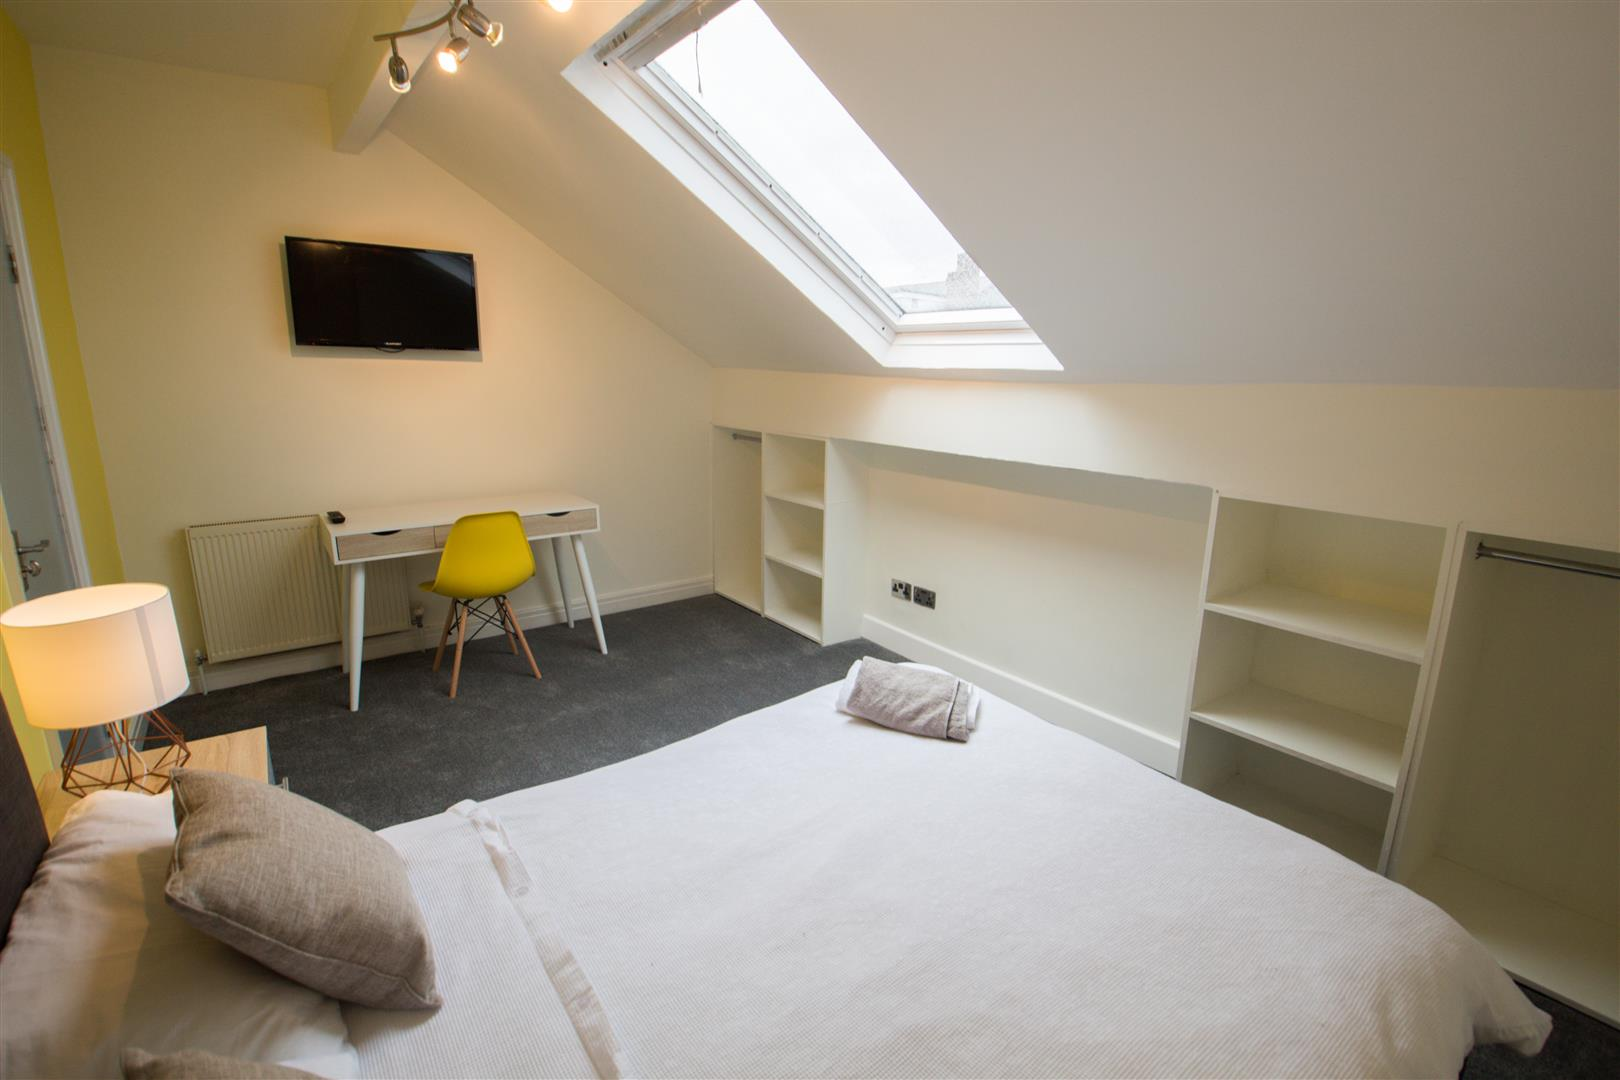 Room 6, 75 Headingley Avenue, Leeds, LS6 3ER Image